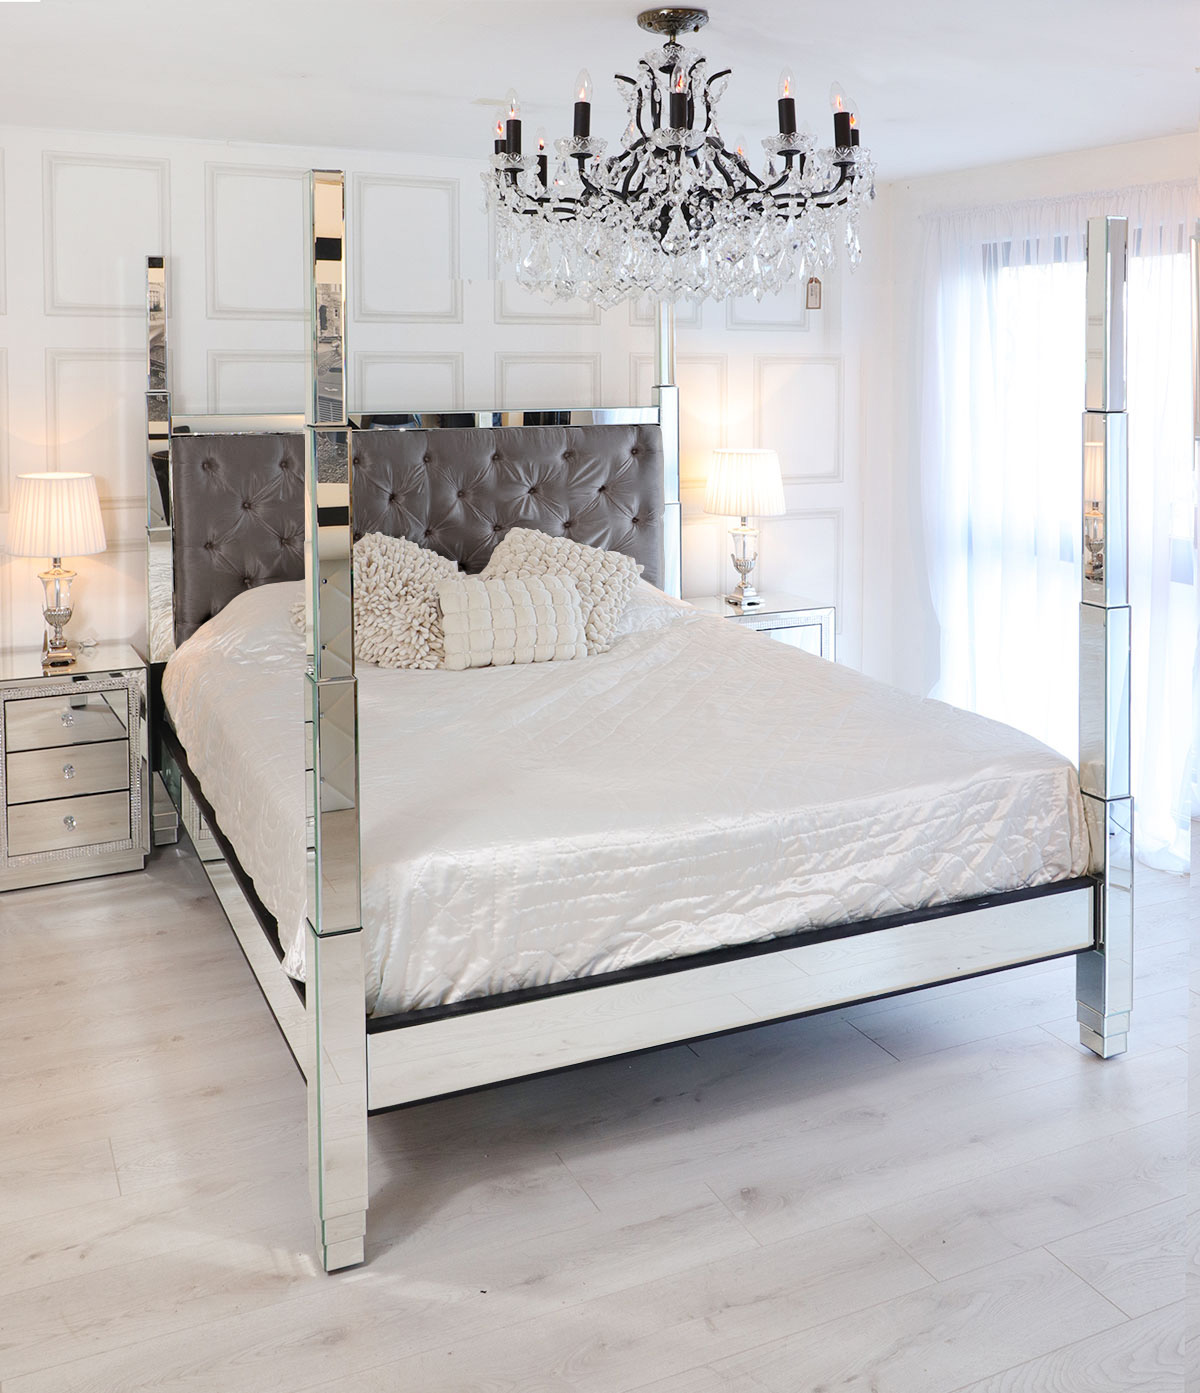 Modern Bedroom with Mirrored Bed Frame